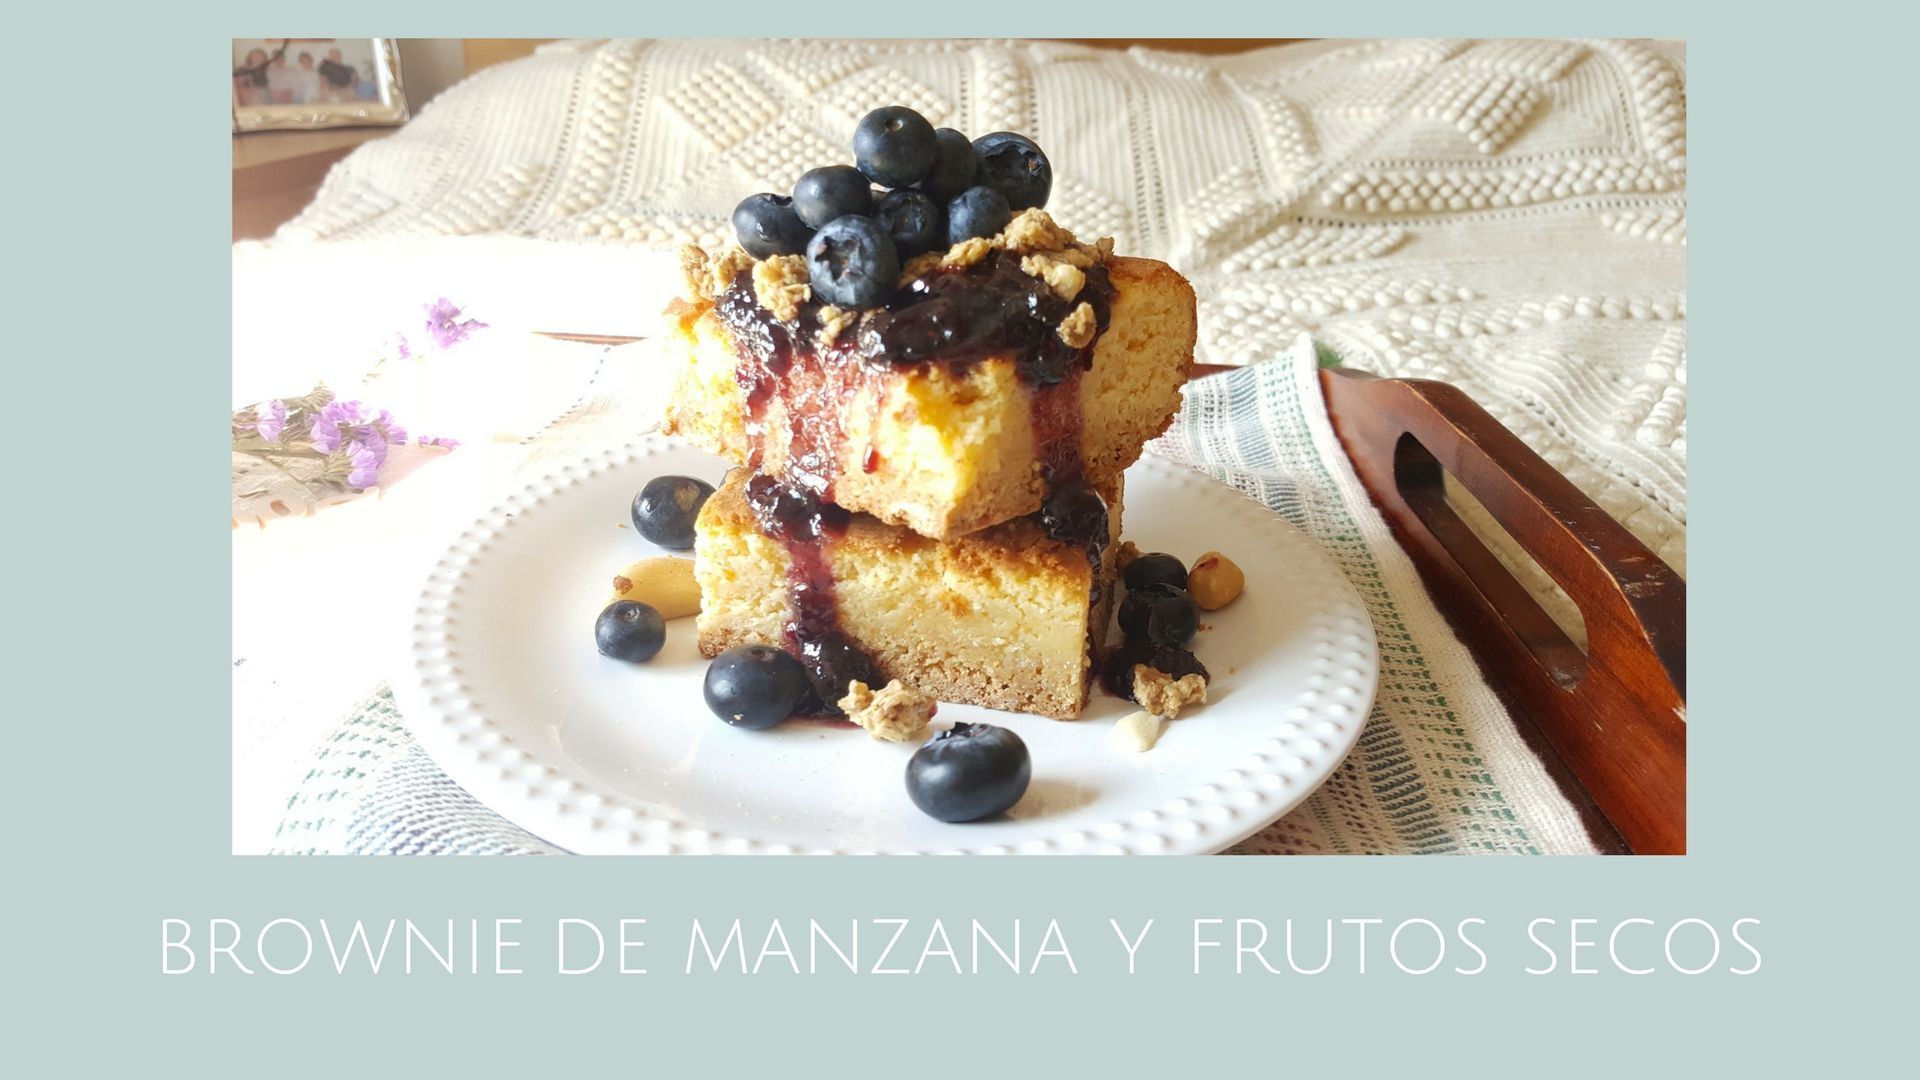 Brownie de manzana y frutos secos